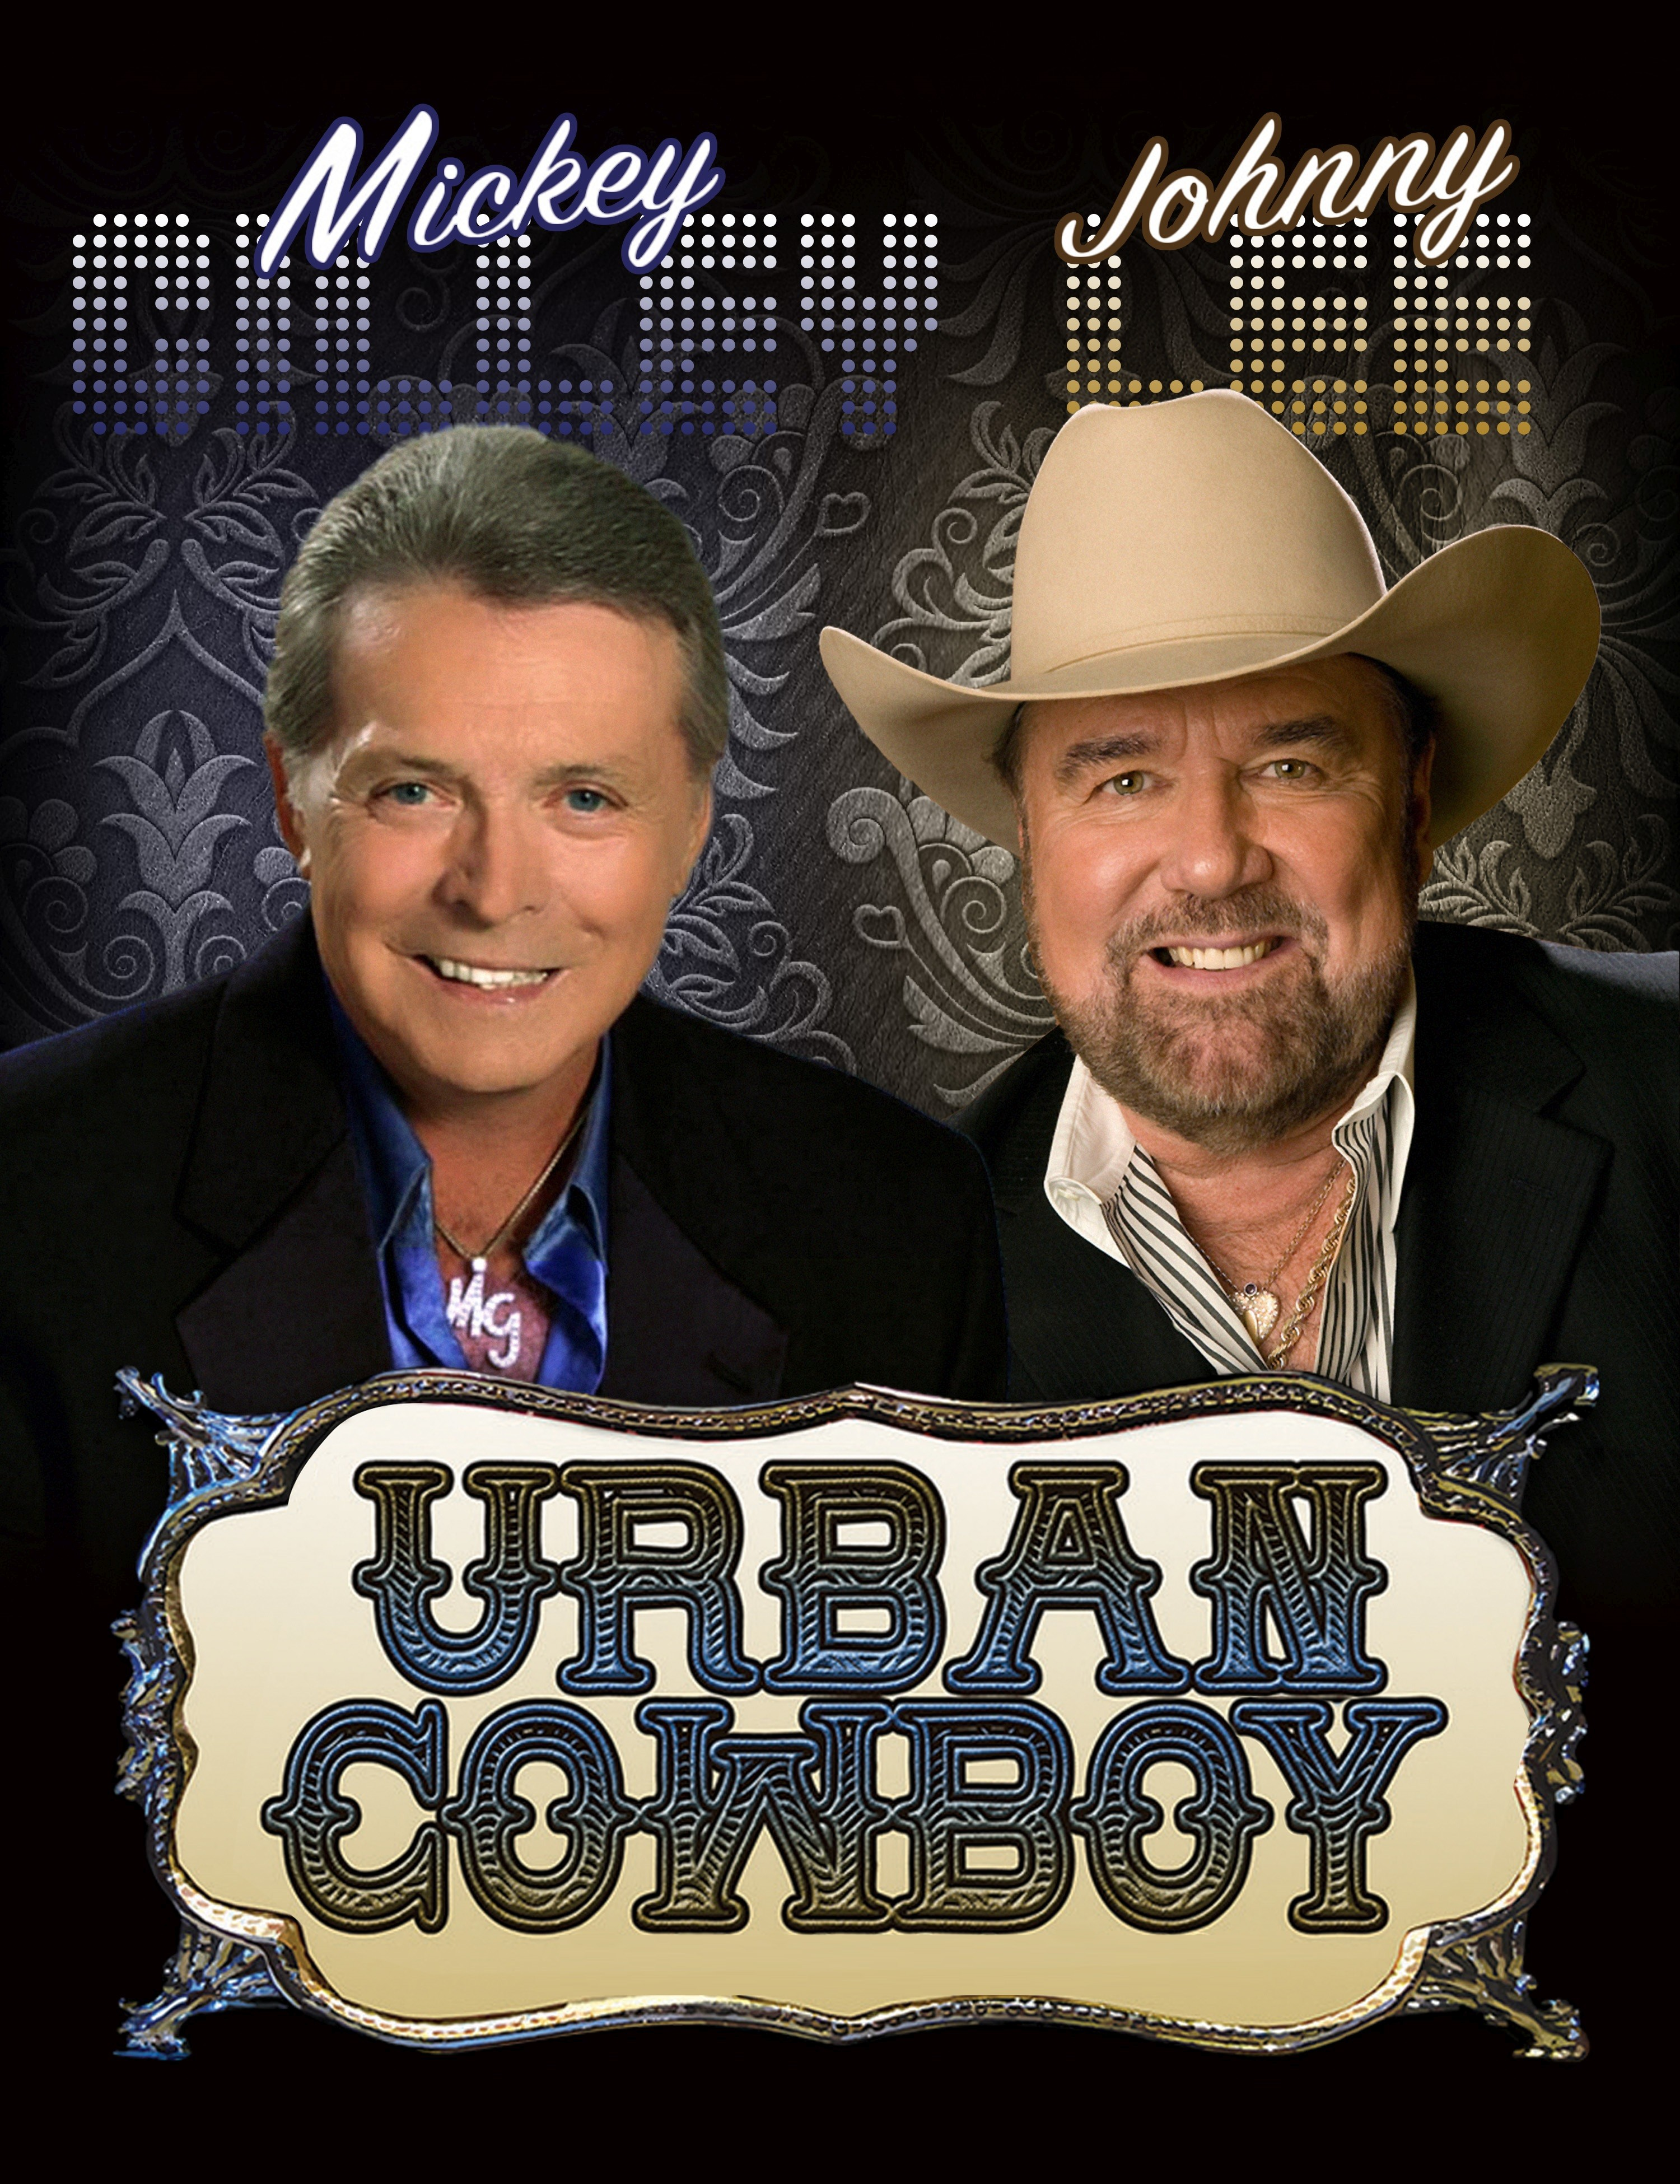 Image result for Mickey gilley and johnny lee